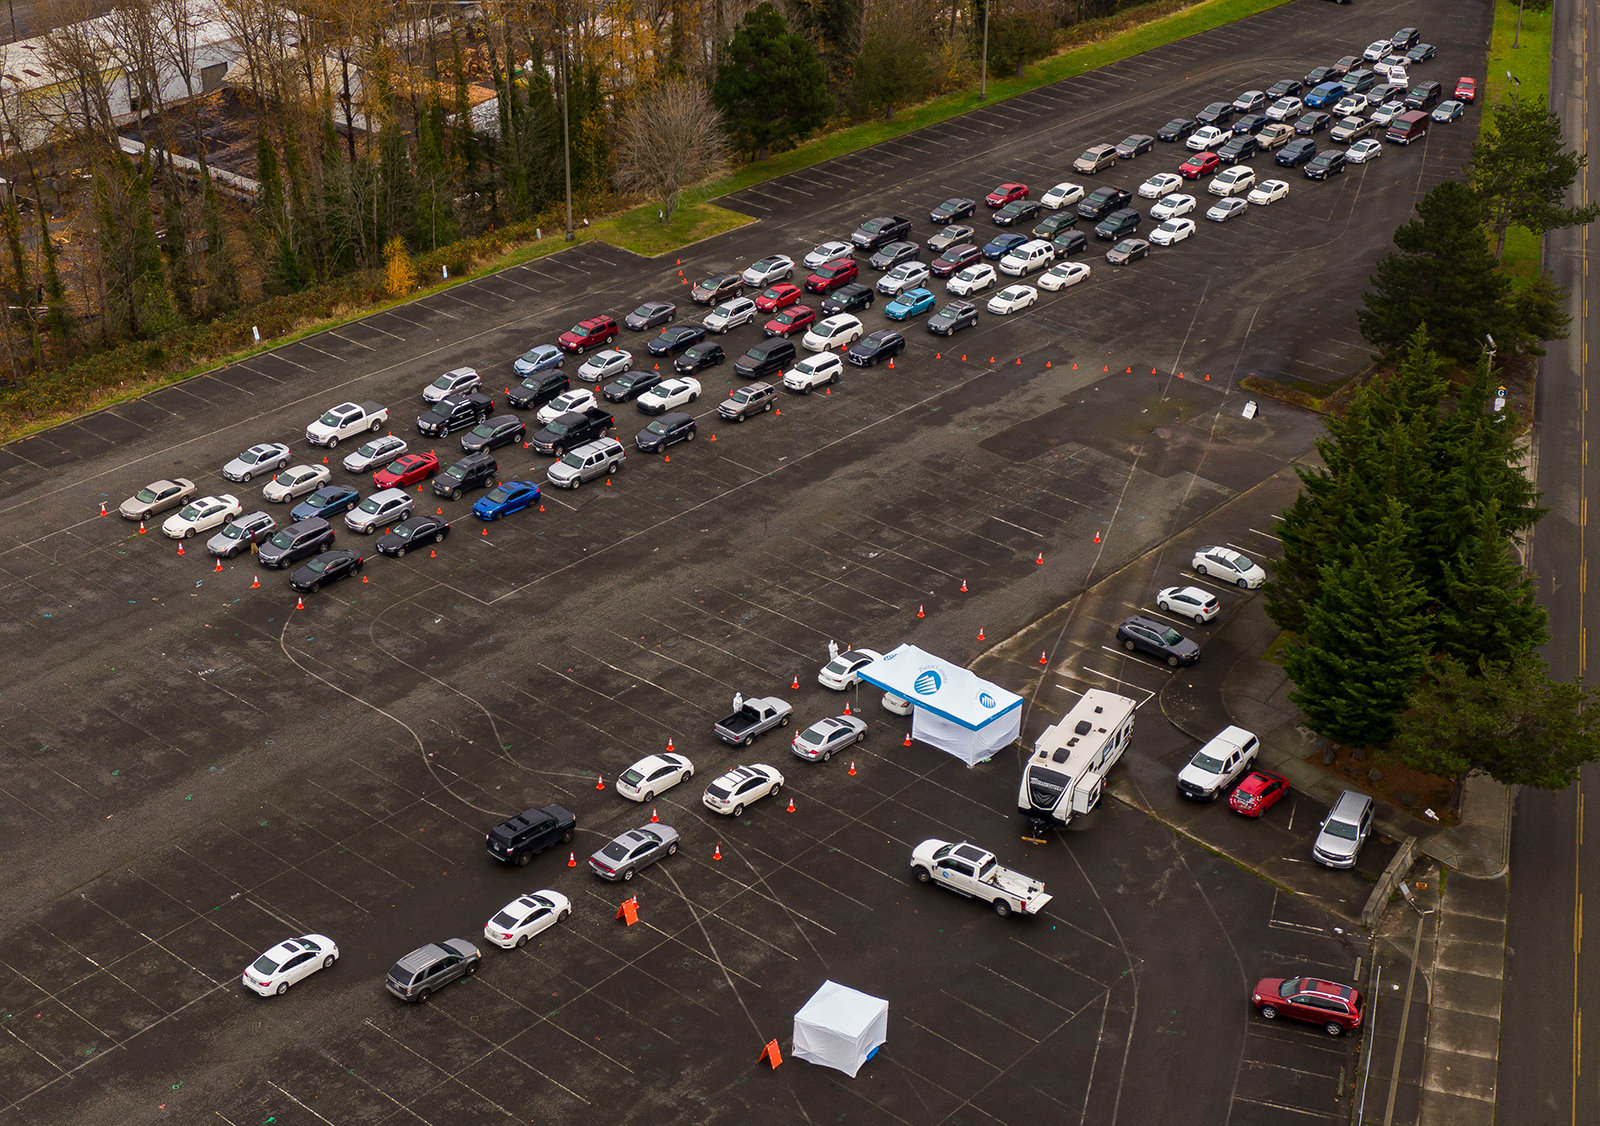 Cars line up during a Covid-19 testing and flu shot event at the Tacoma Dome in Tacoma, Washington, on November 28.